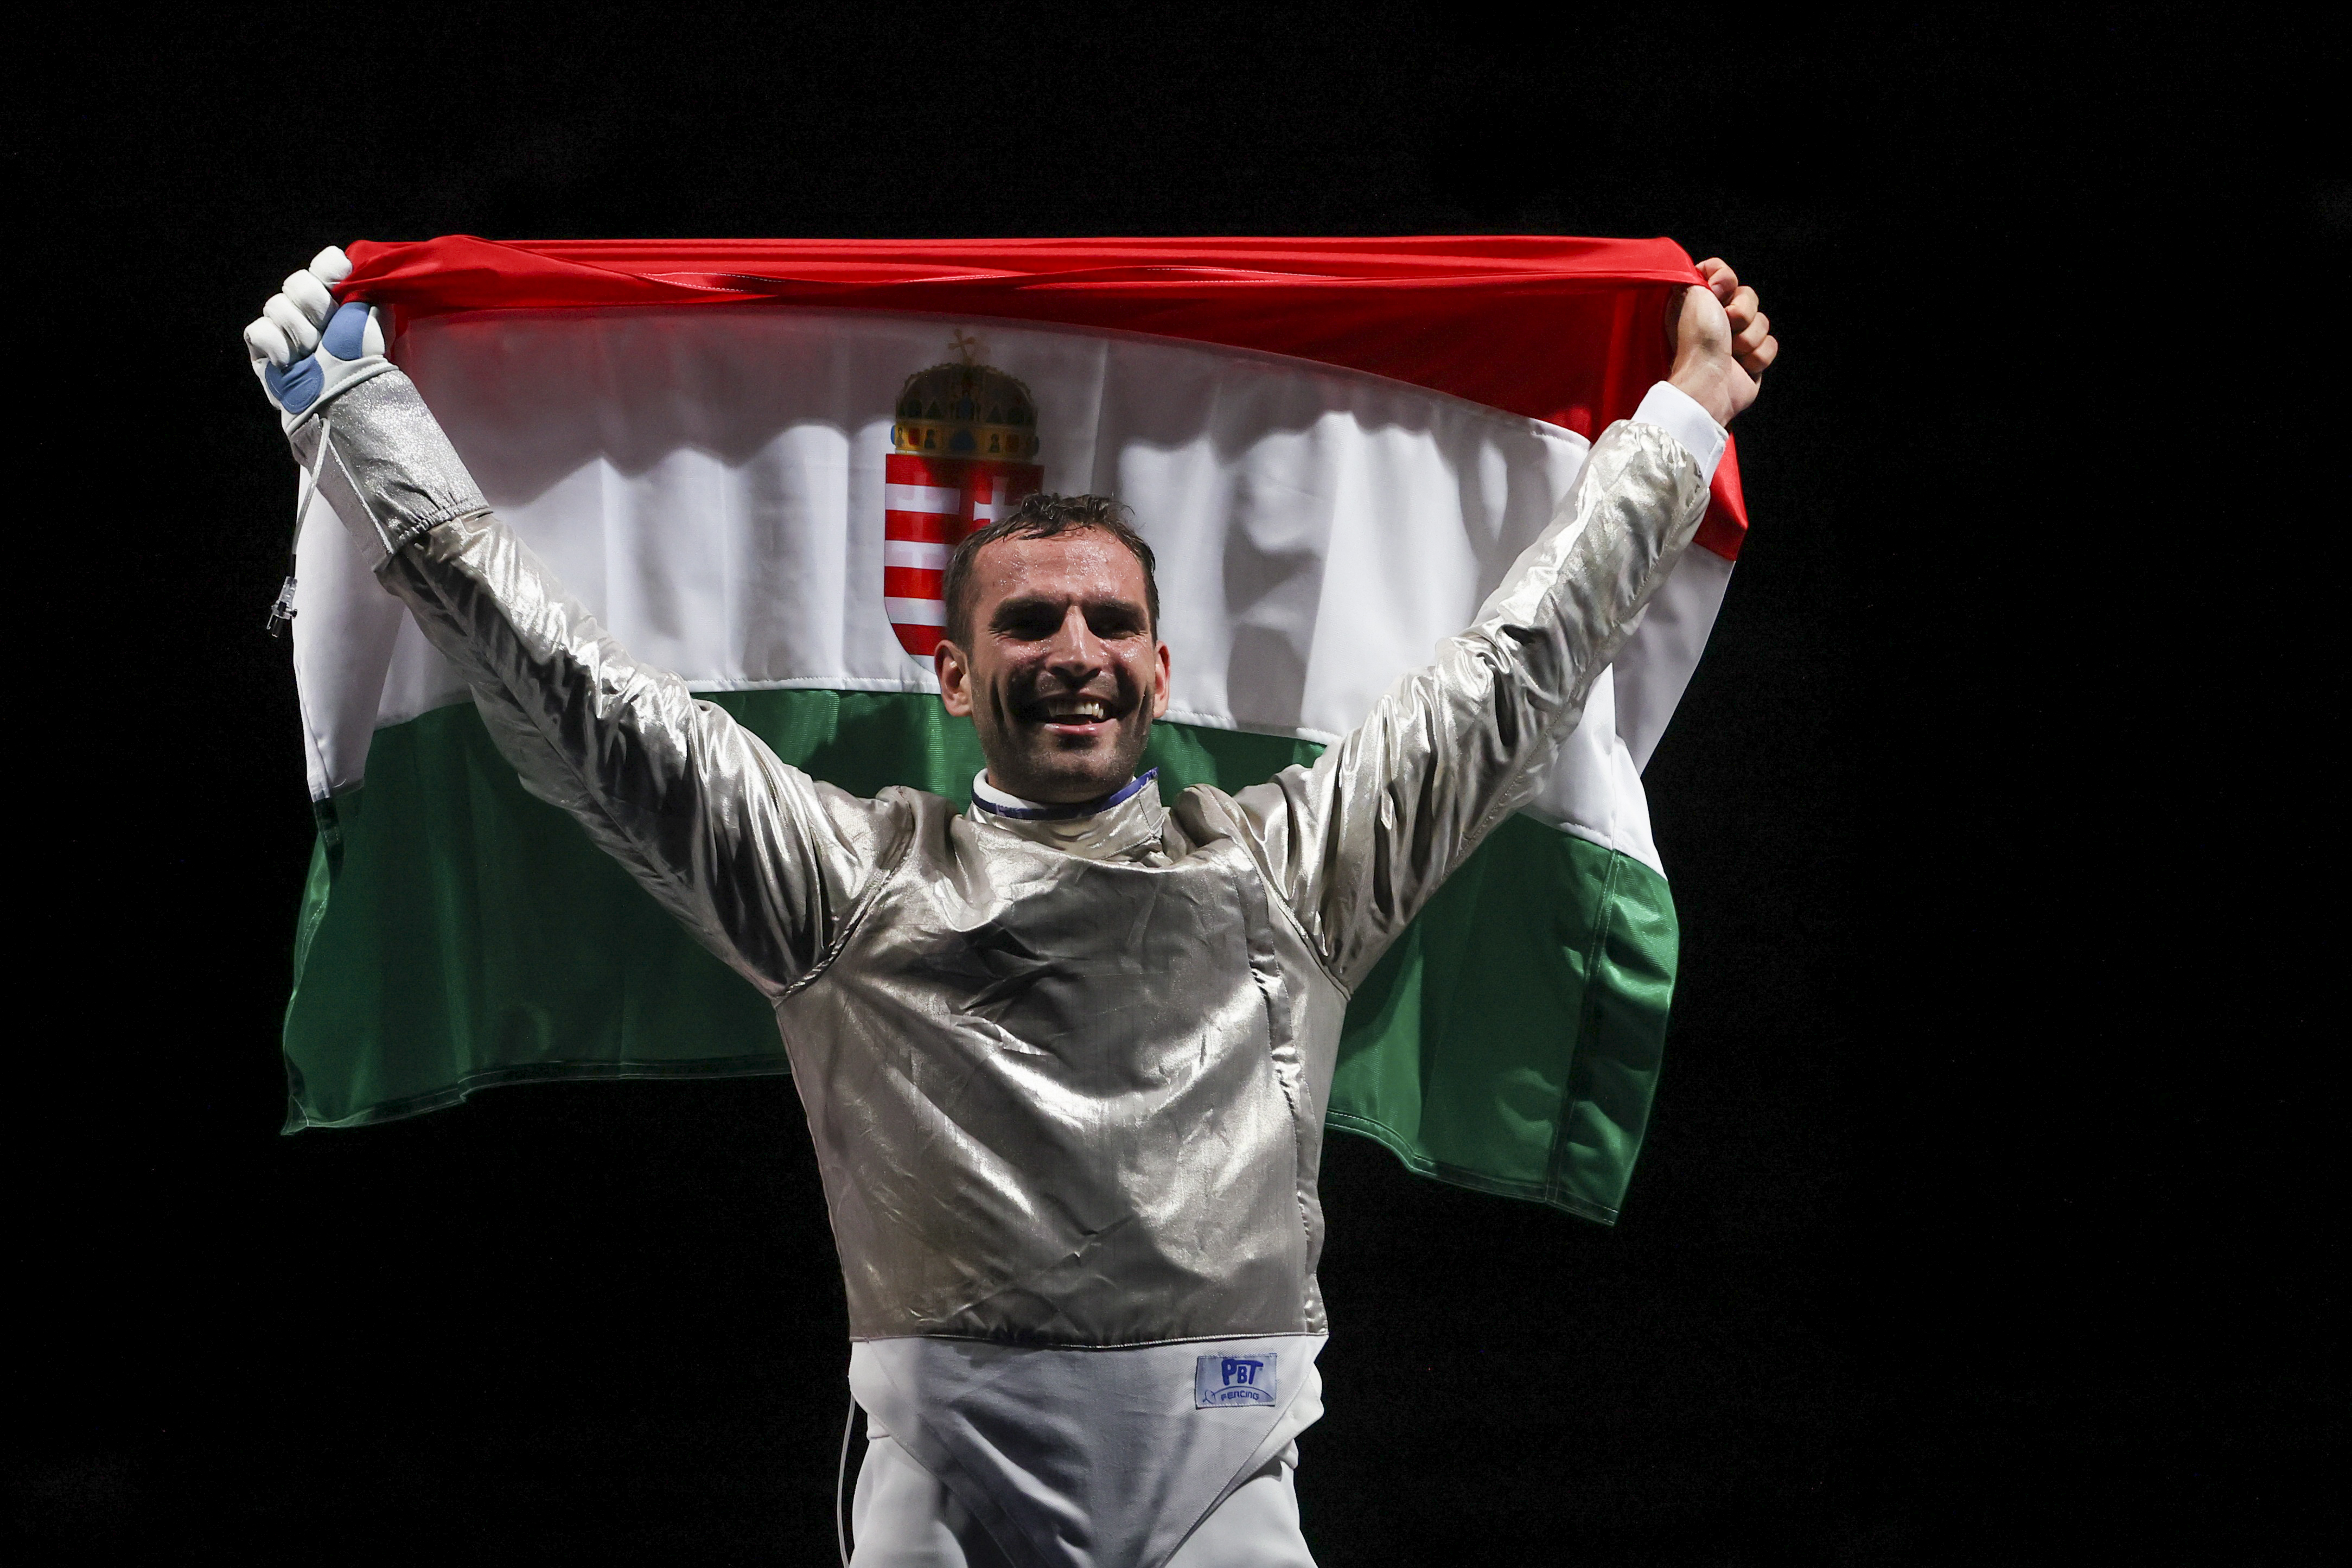 Tokyo 2020 Olympics - Fencing - Men's Individual Sabre - Gold medal match - Makuhari Messe Hall B - Chiba, Japan - July 24, 2021. Aron Szilagyi of Hungary celebrates after winning gold as he holds the flag of Hungary REUTERS/Maxim Shemetov